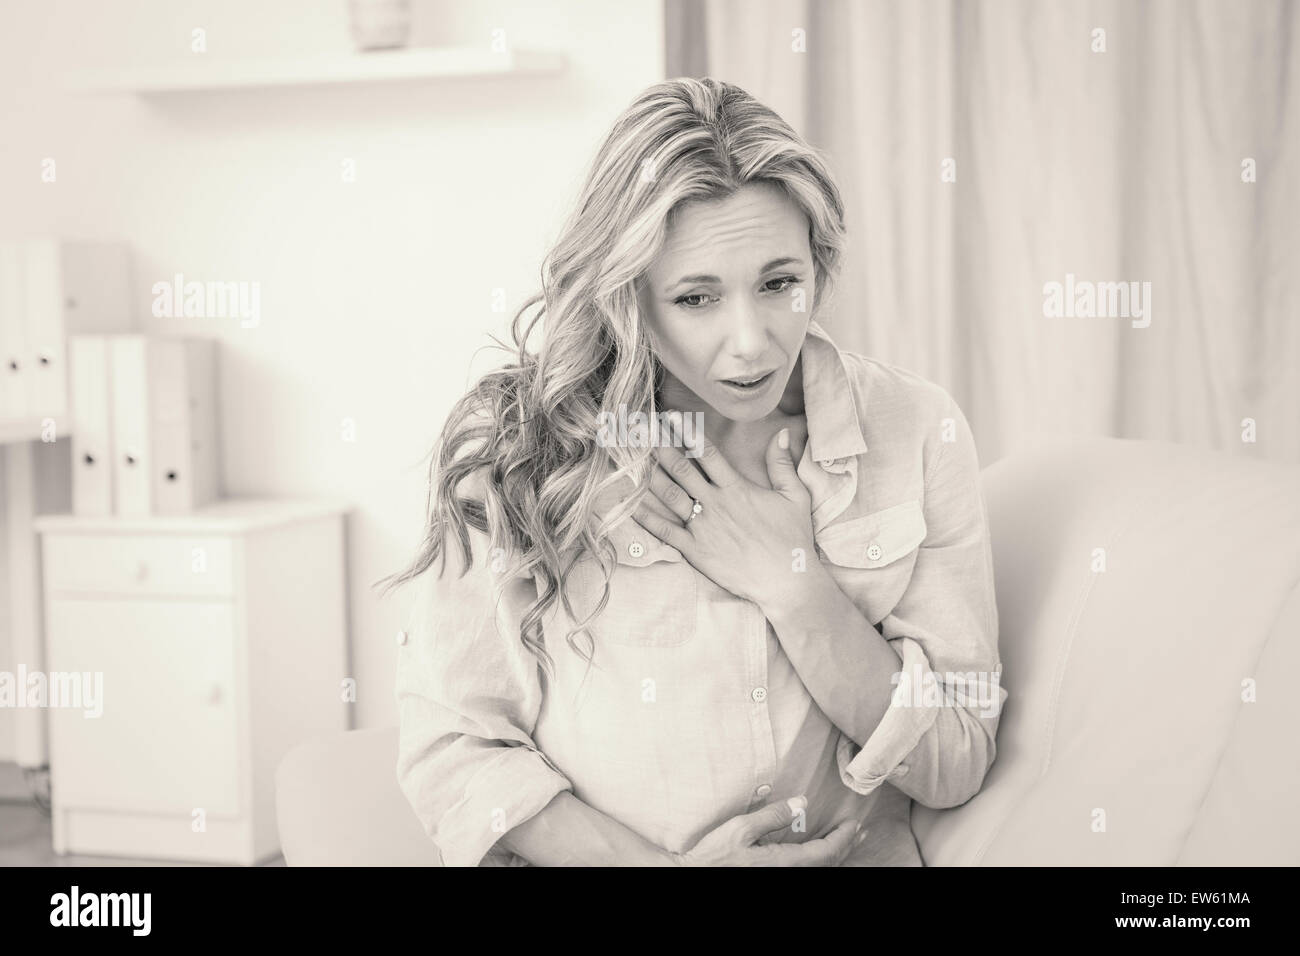 Pretty blonde getting affliction breathing - Stock Image